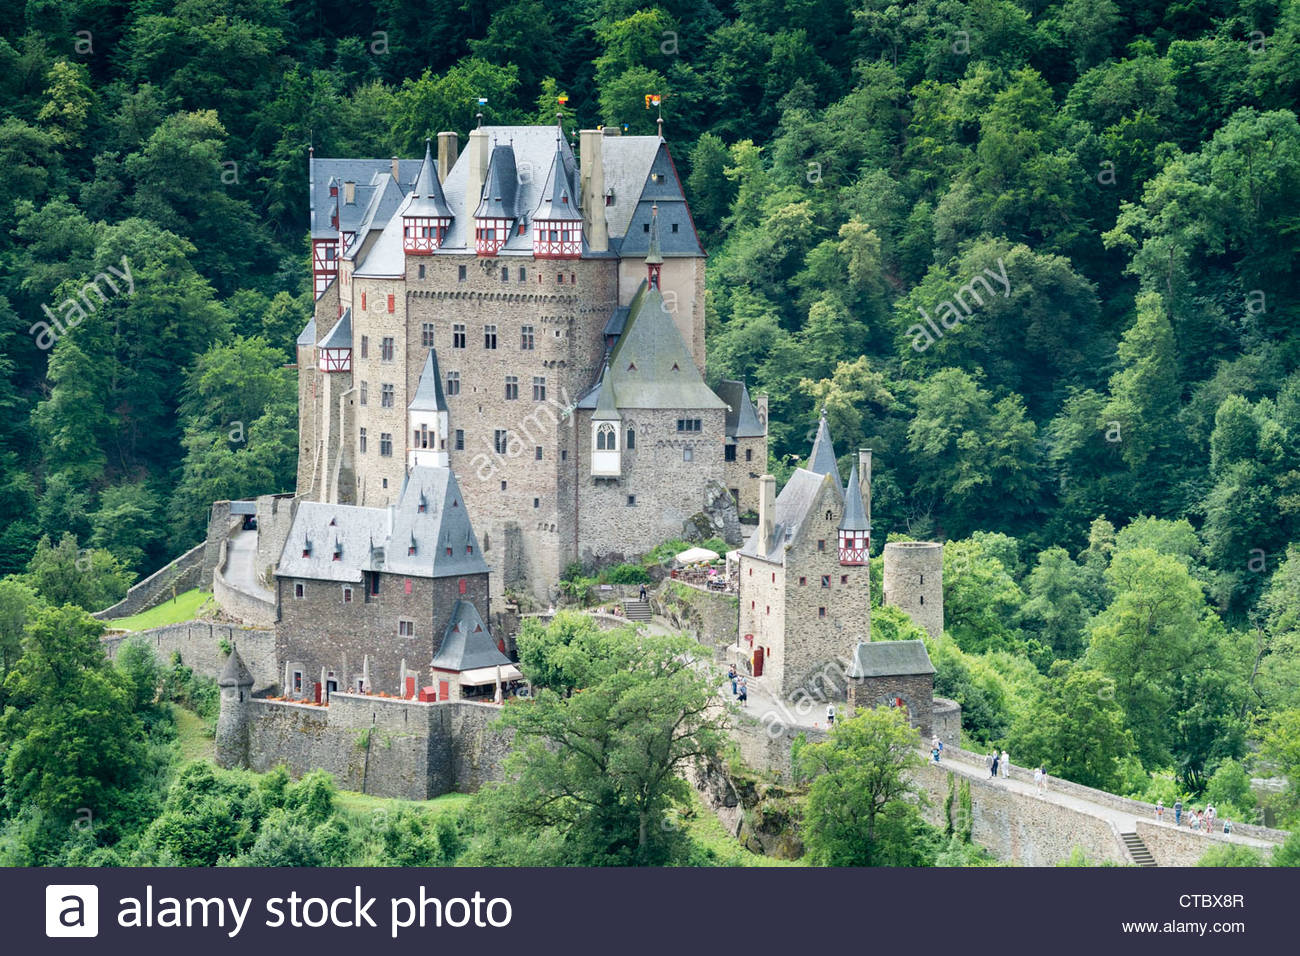 Burg Eltz The Moselle Valley, Burg Eltz castle near Mosel River valley in in Rhineland ...